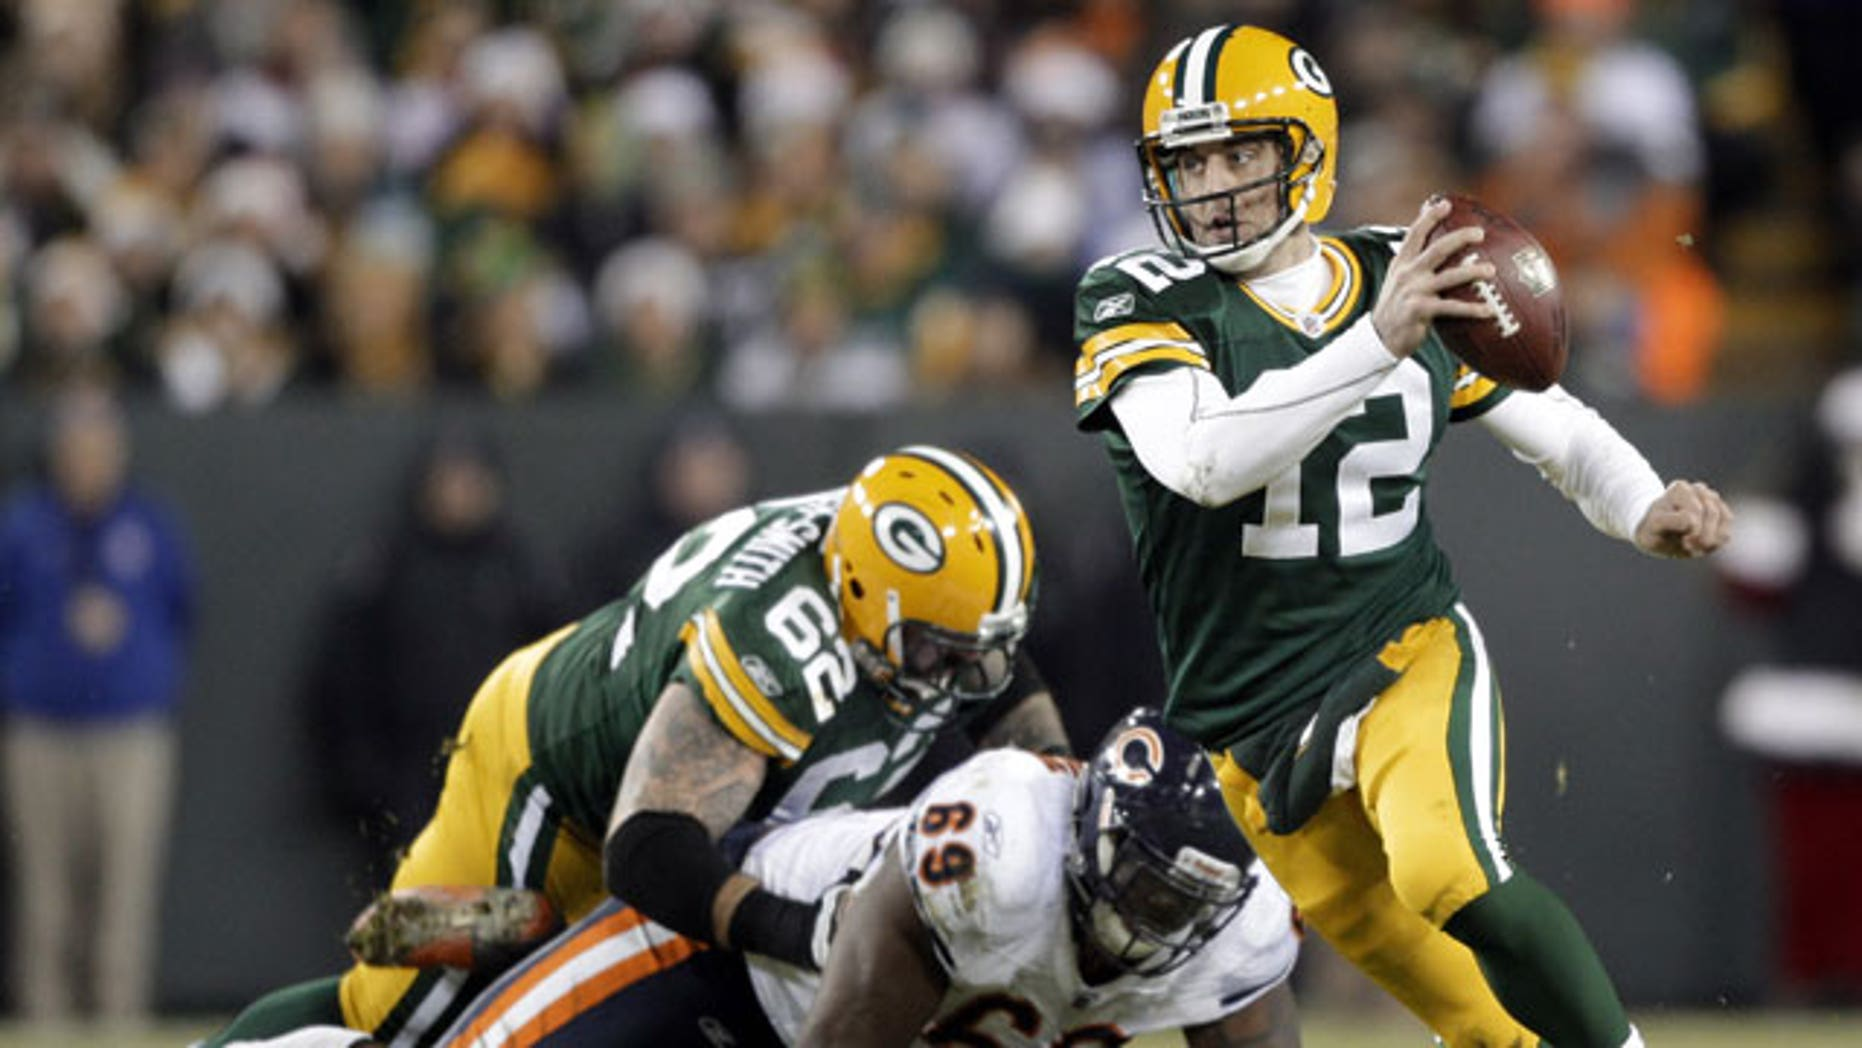 December 25, 2011: Green Bay Packers quarterback Aaron Rodgers scrambles during the second half of an NFL football game against the Chicago Bears in Green Bay, Wis.